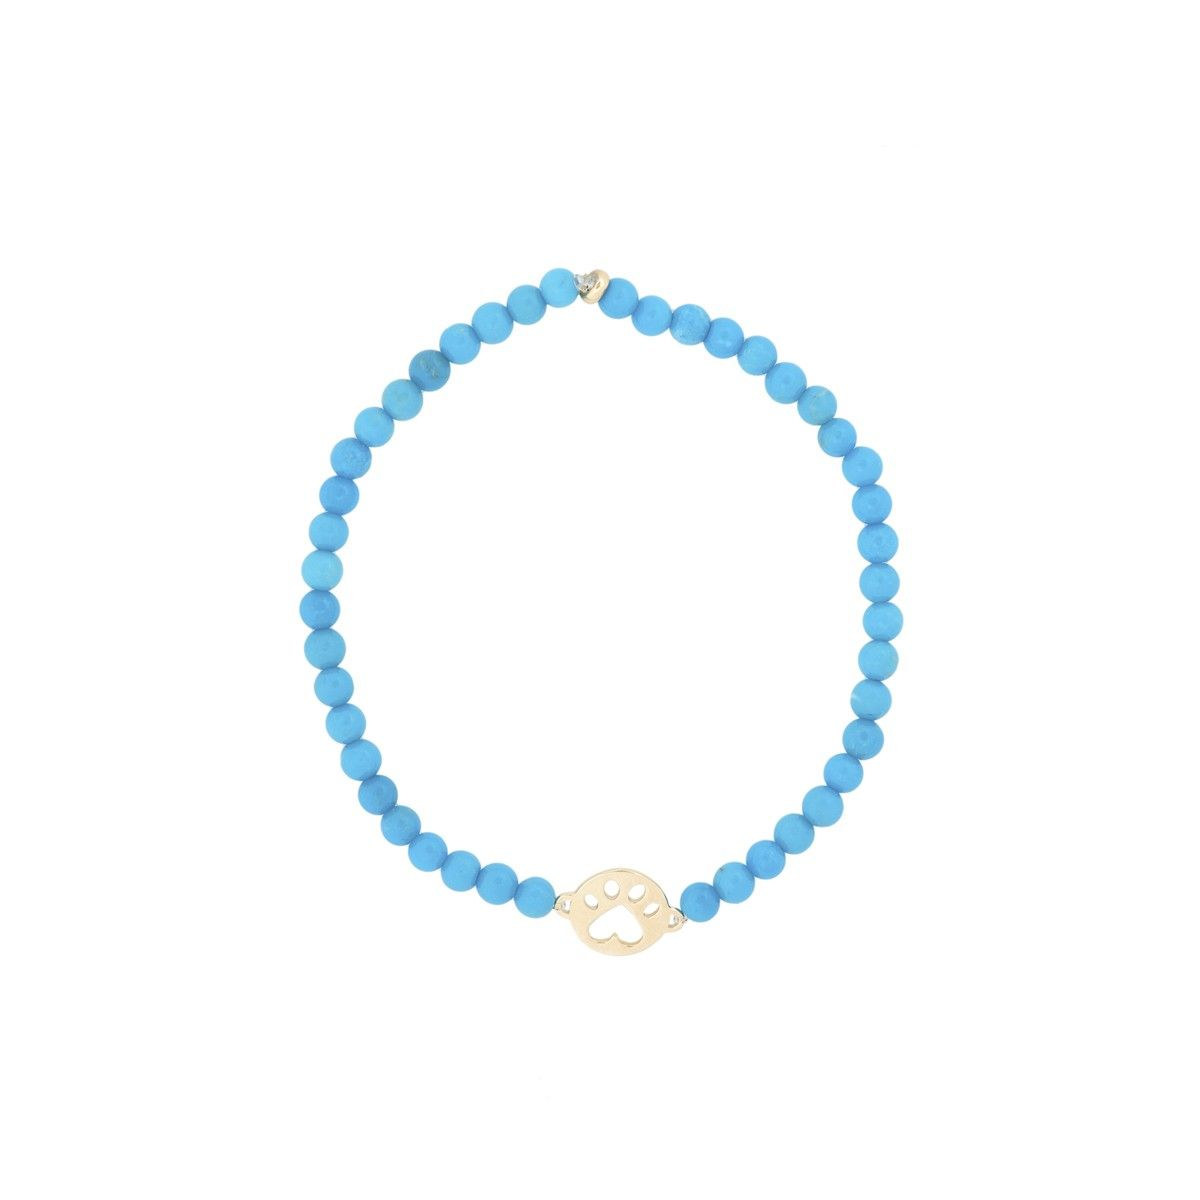 Our Cause For Paws 14k Mini Paw And Turquoise Bead Bracelet